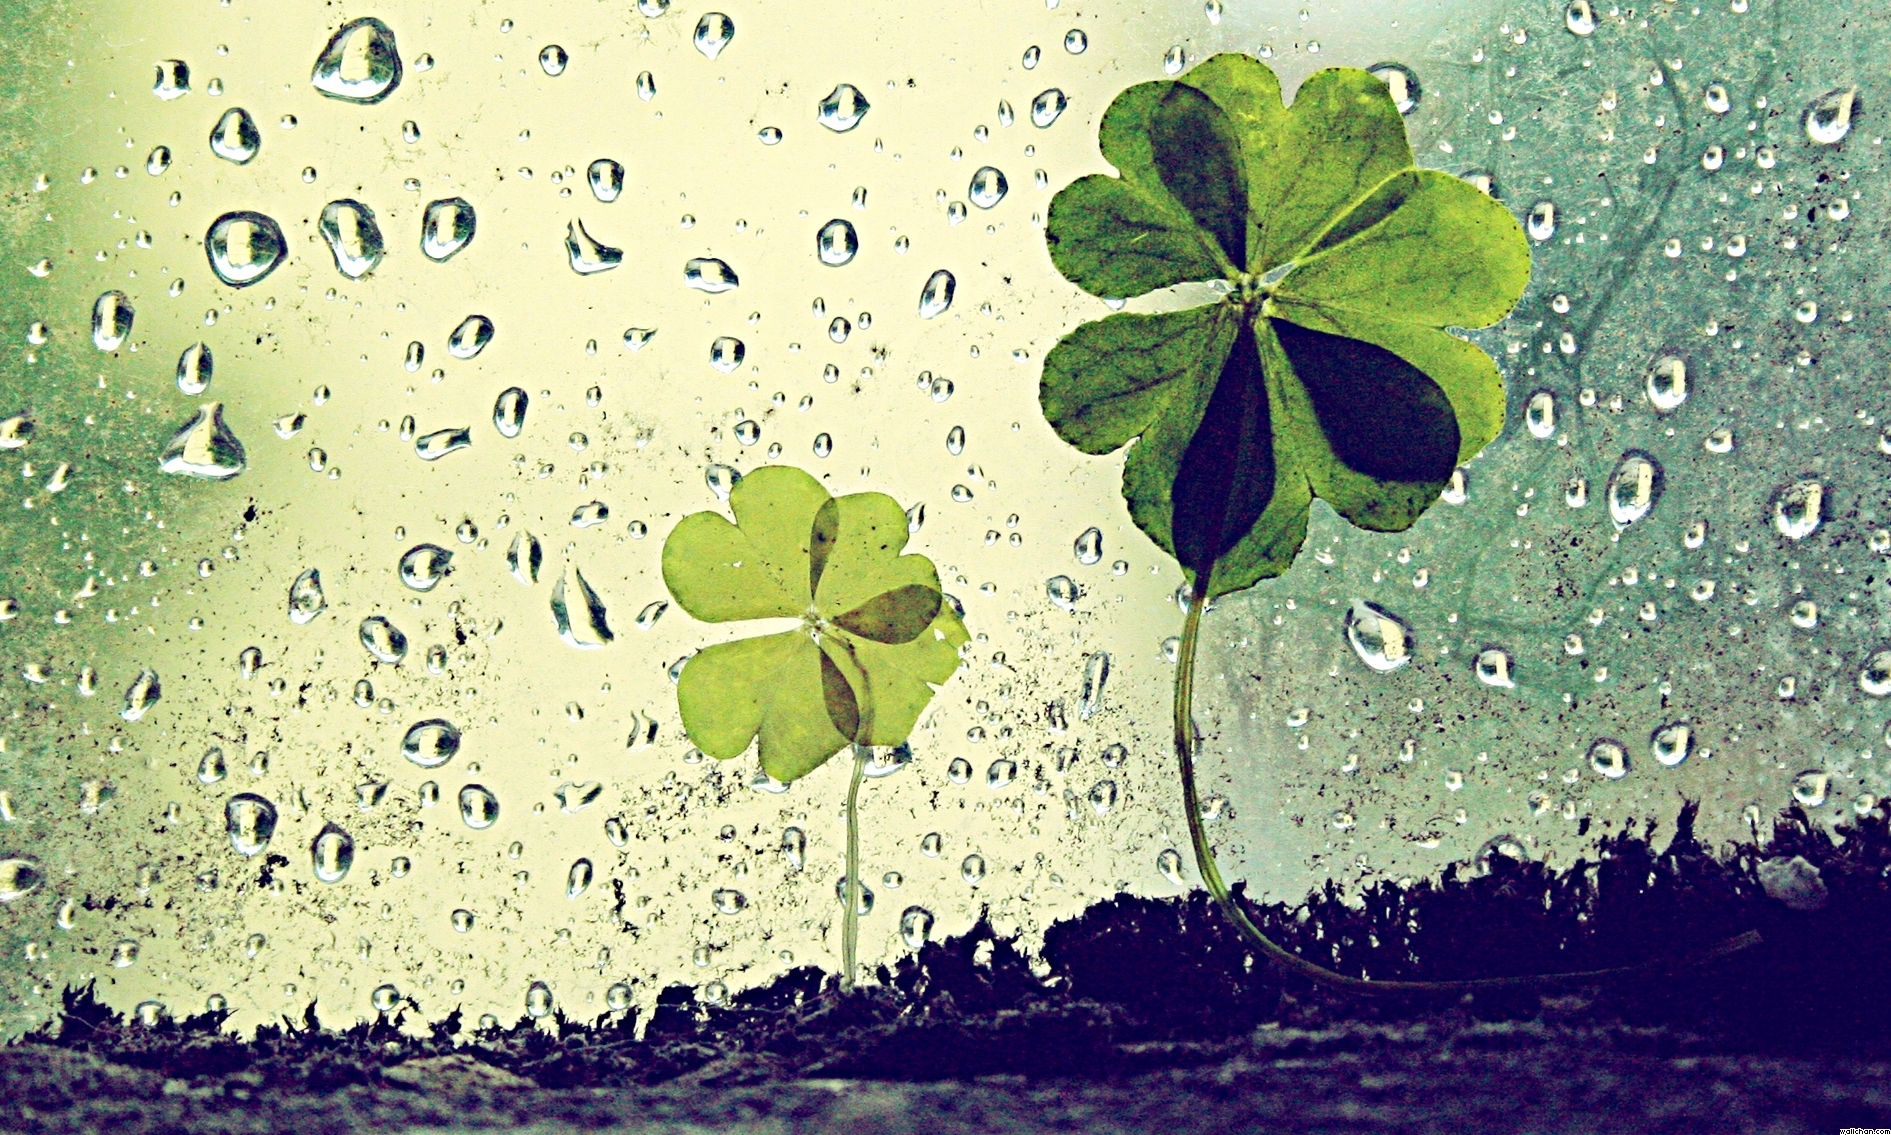 Green Day Iphone 5 Wallpaper Rain Drops Flower Leaf 1080p Green Water Wallpaper And